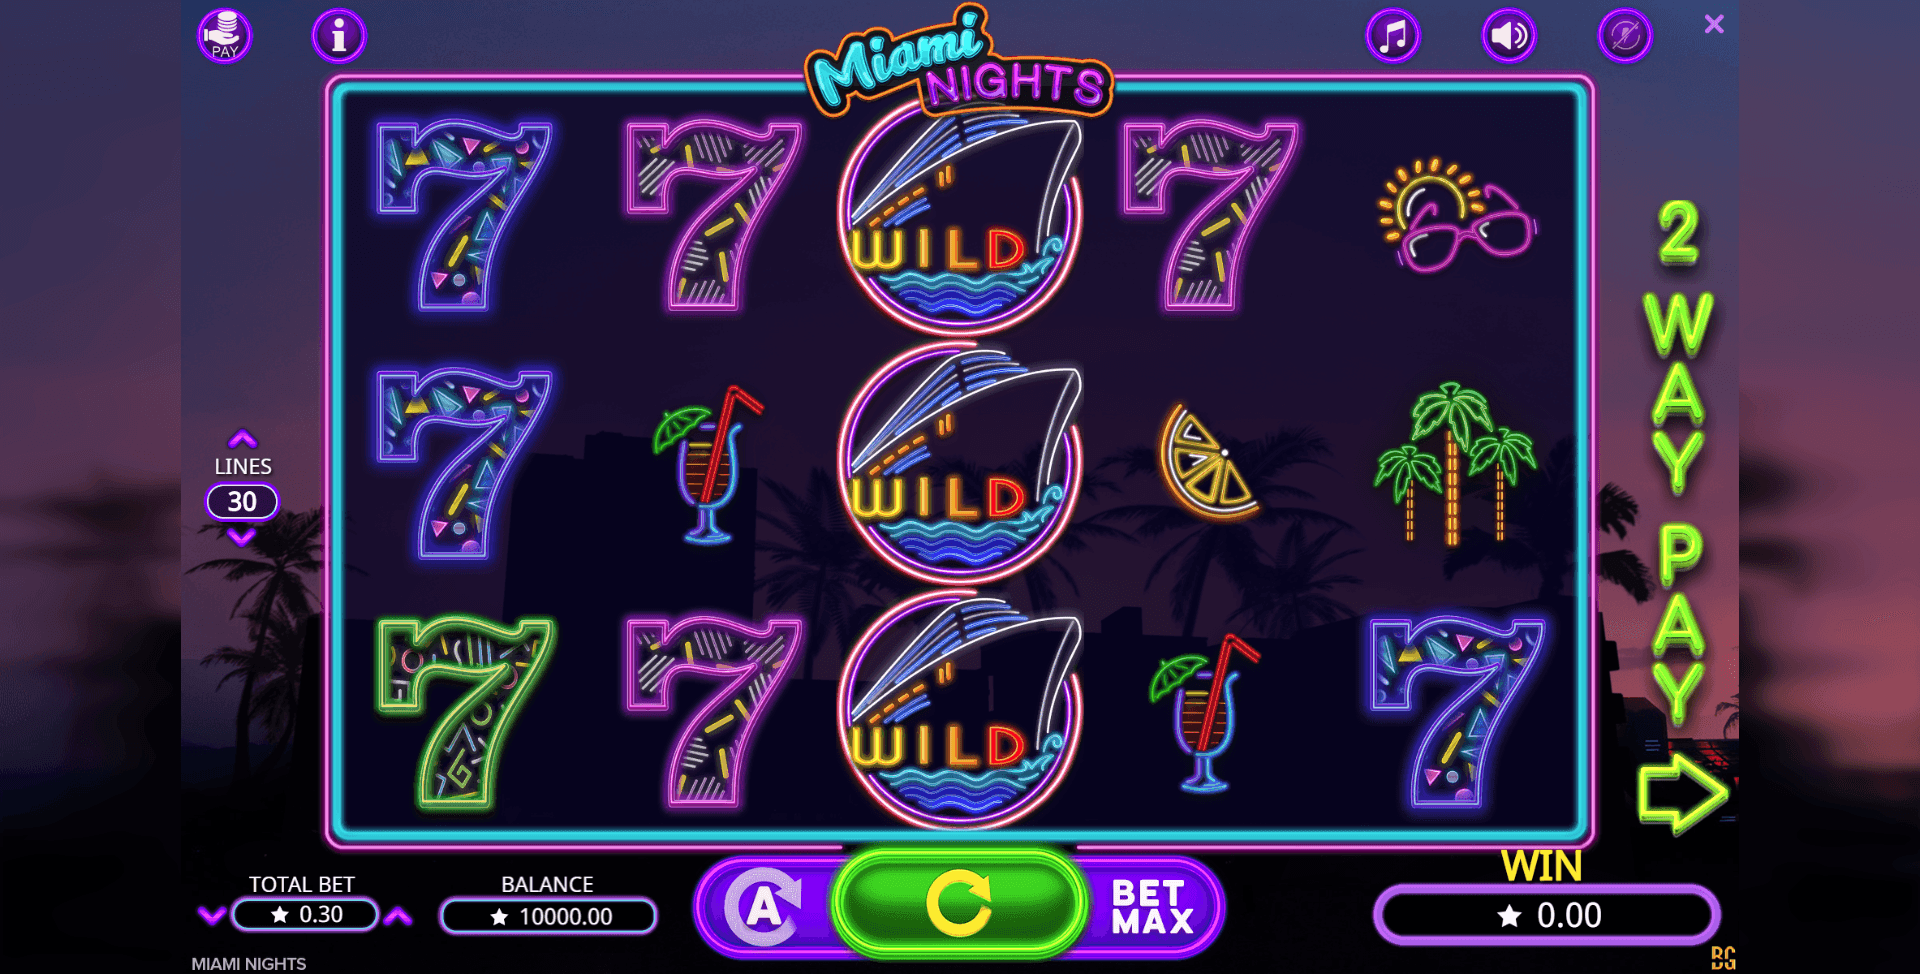 Miami Nights by Booming Games